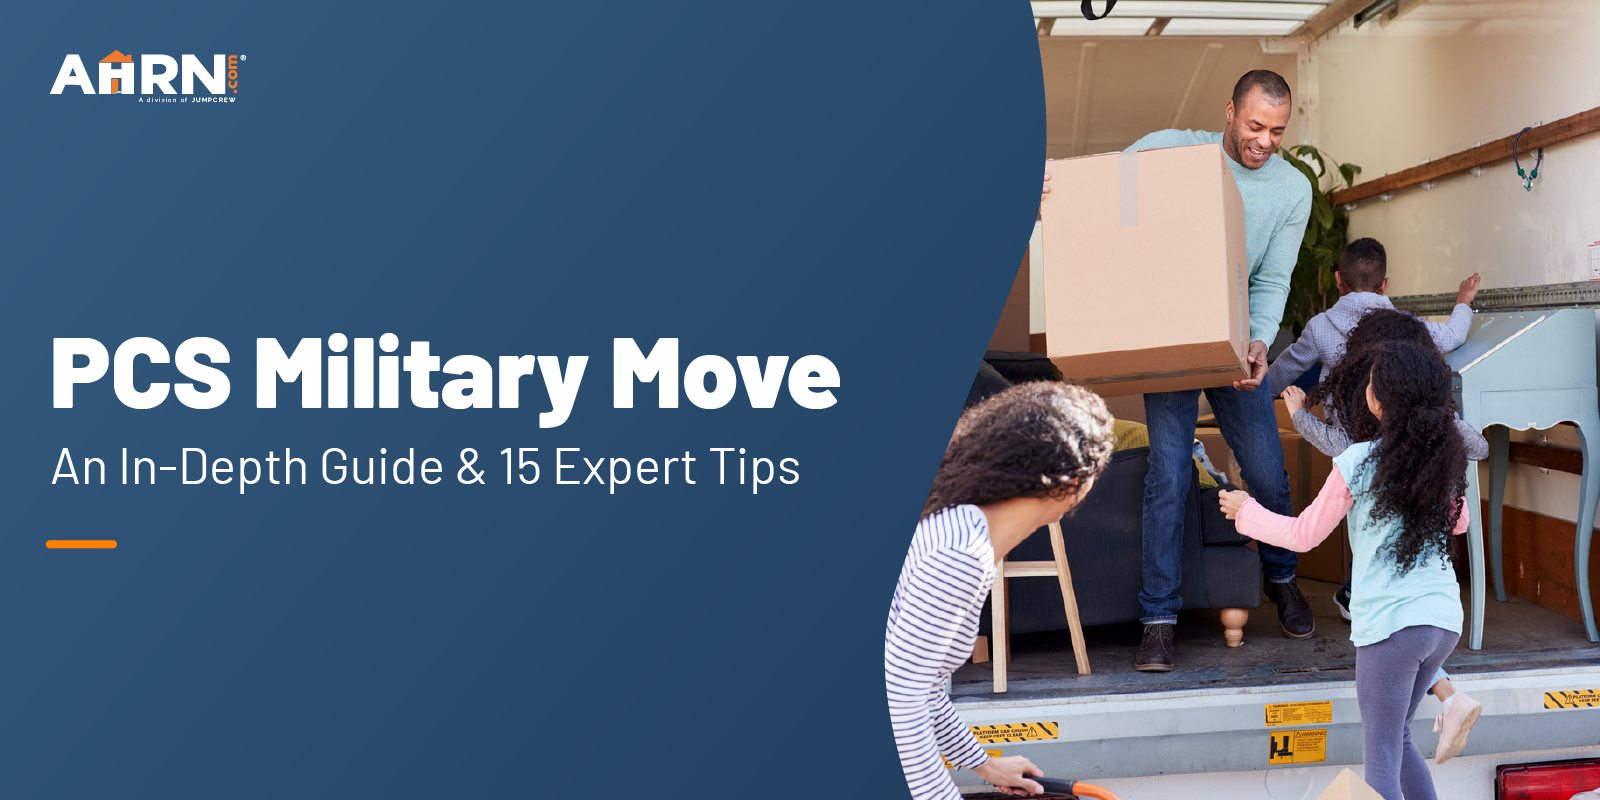 PCS Military Move: An In-Depth Guide & 15 Expert Tips